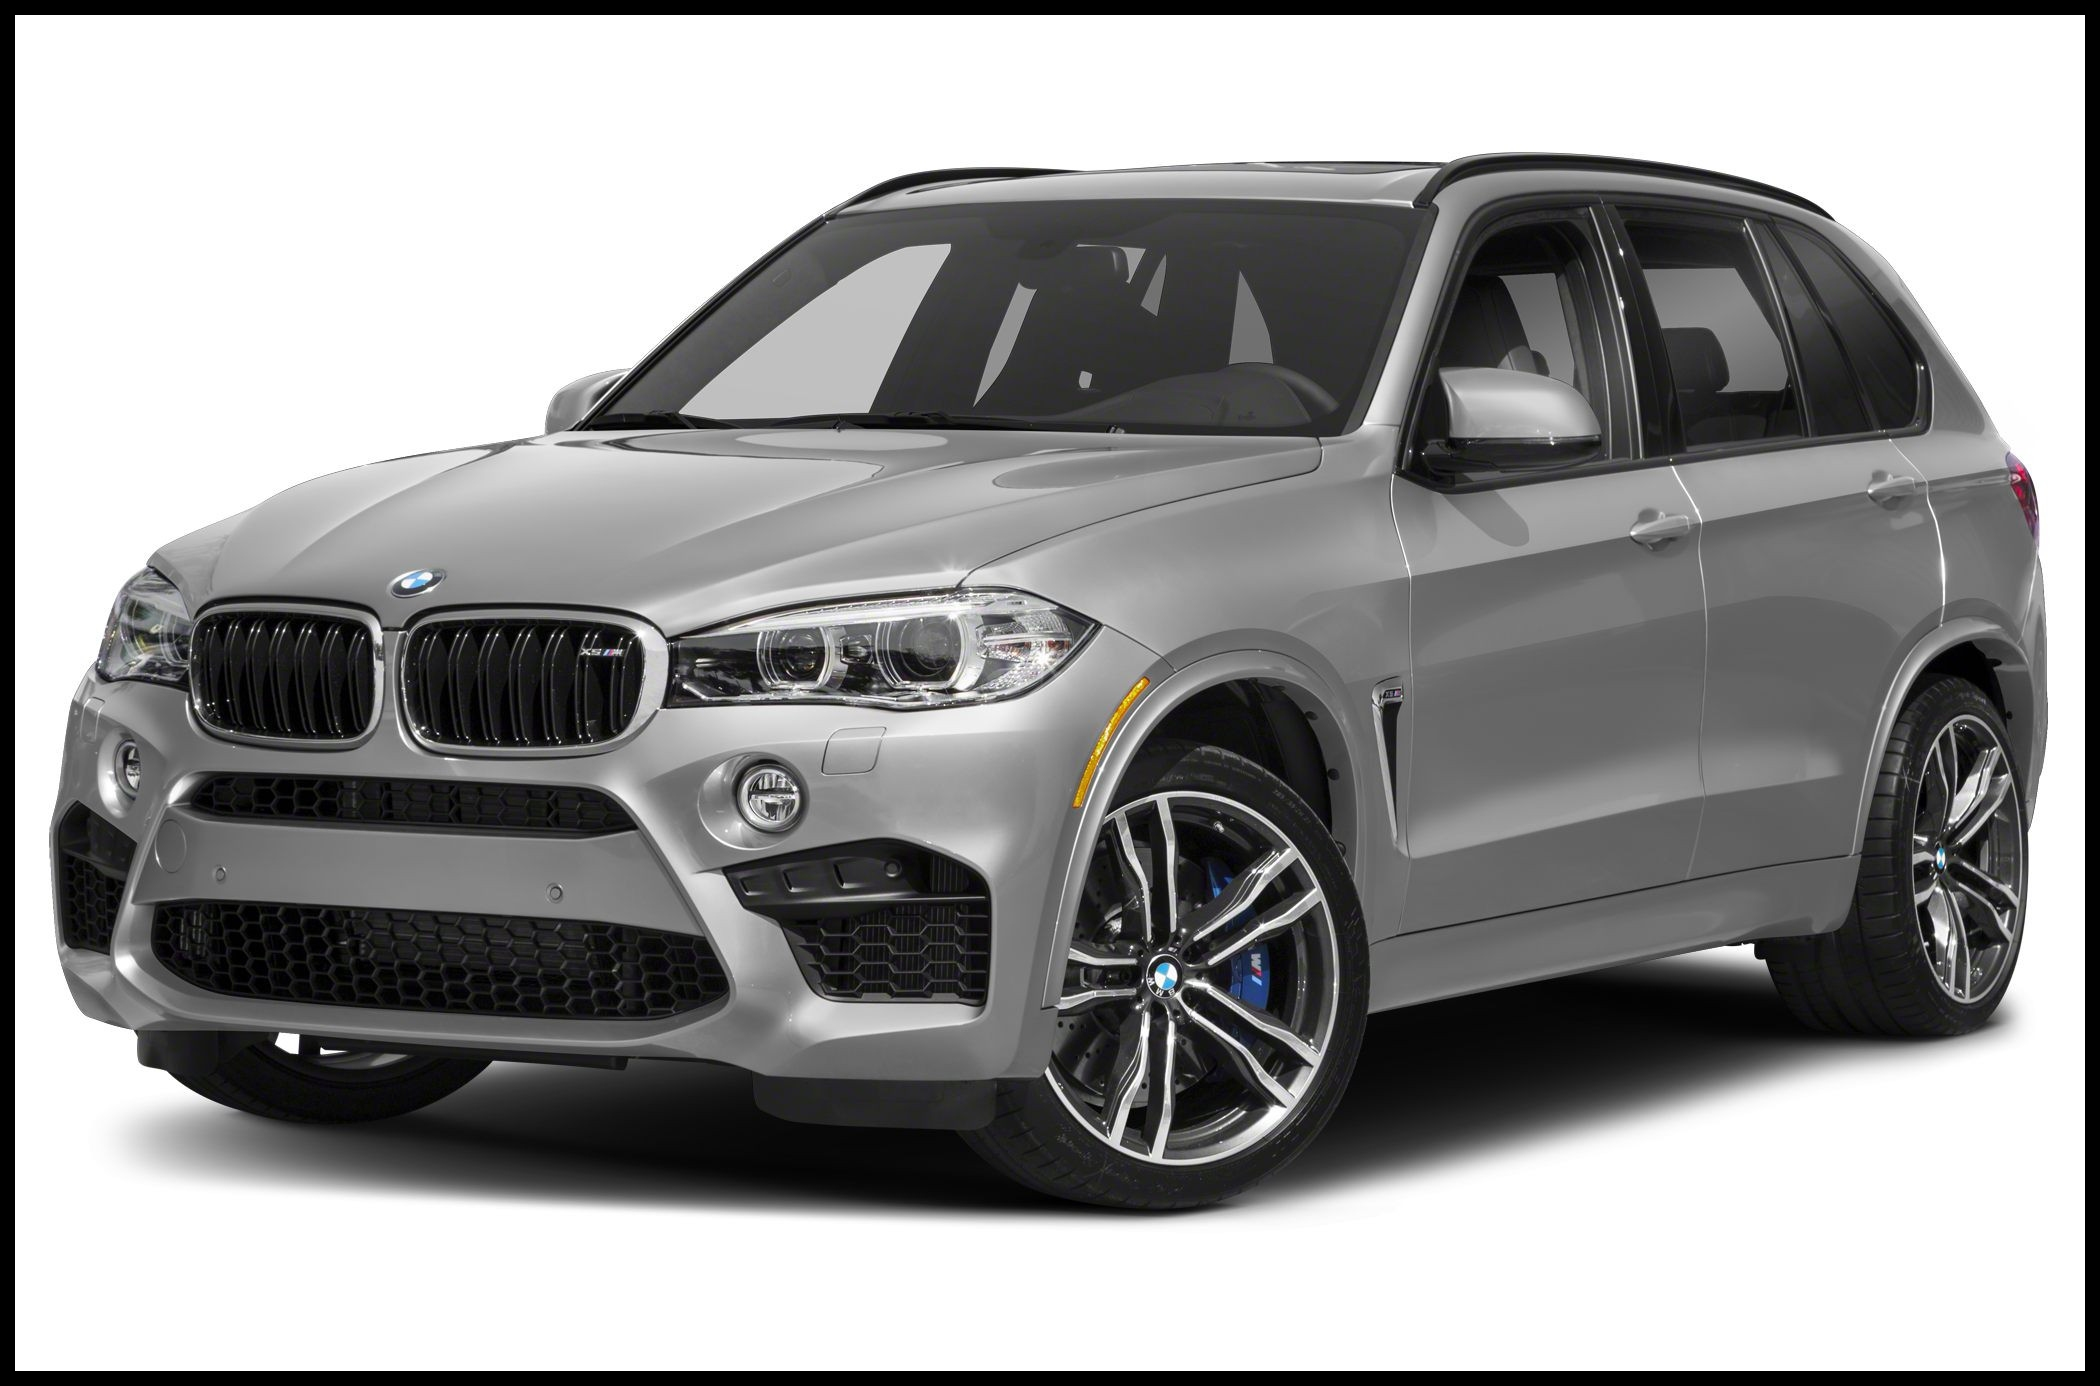 Bmw Build Code Fresh 2018 Bmw X5 M Specs and Prices